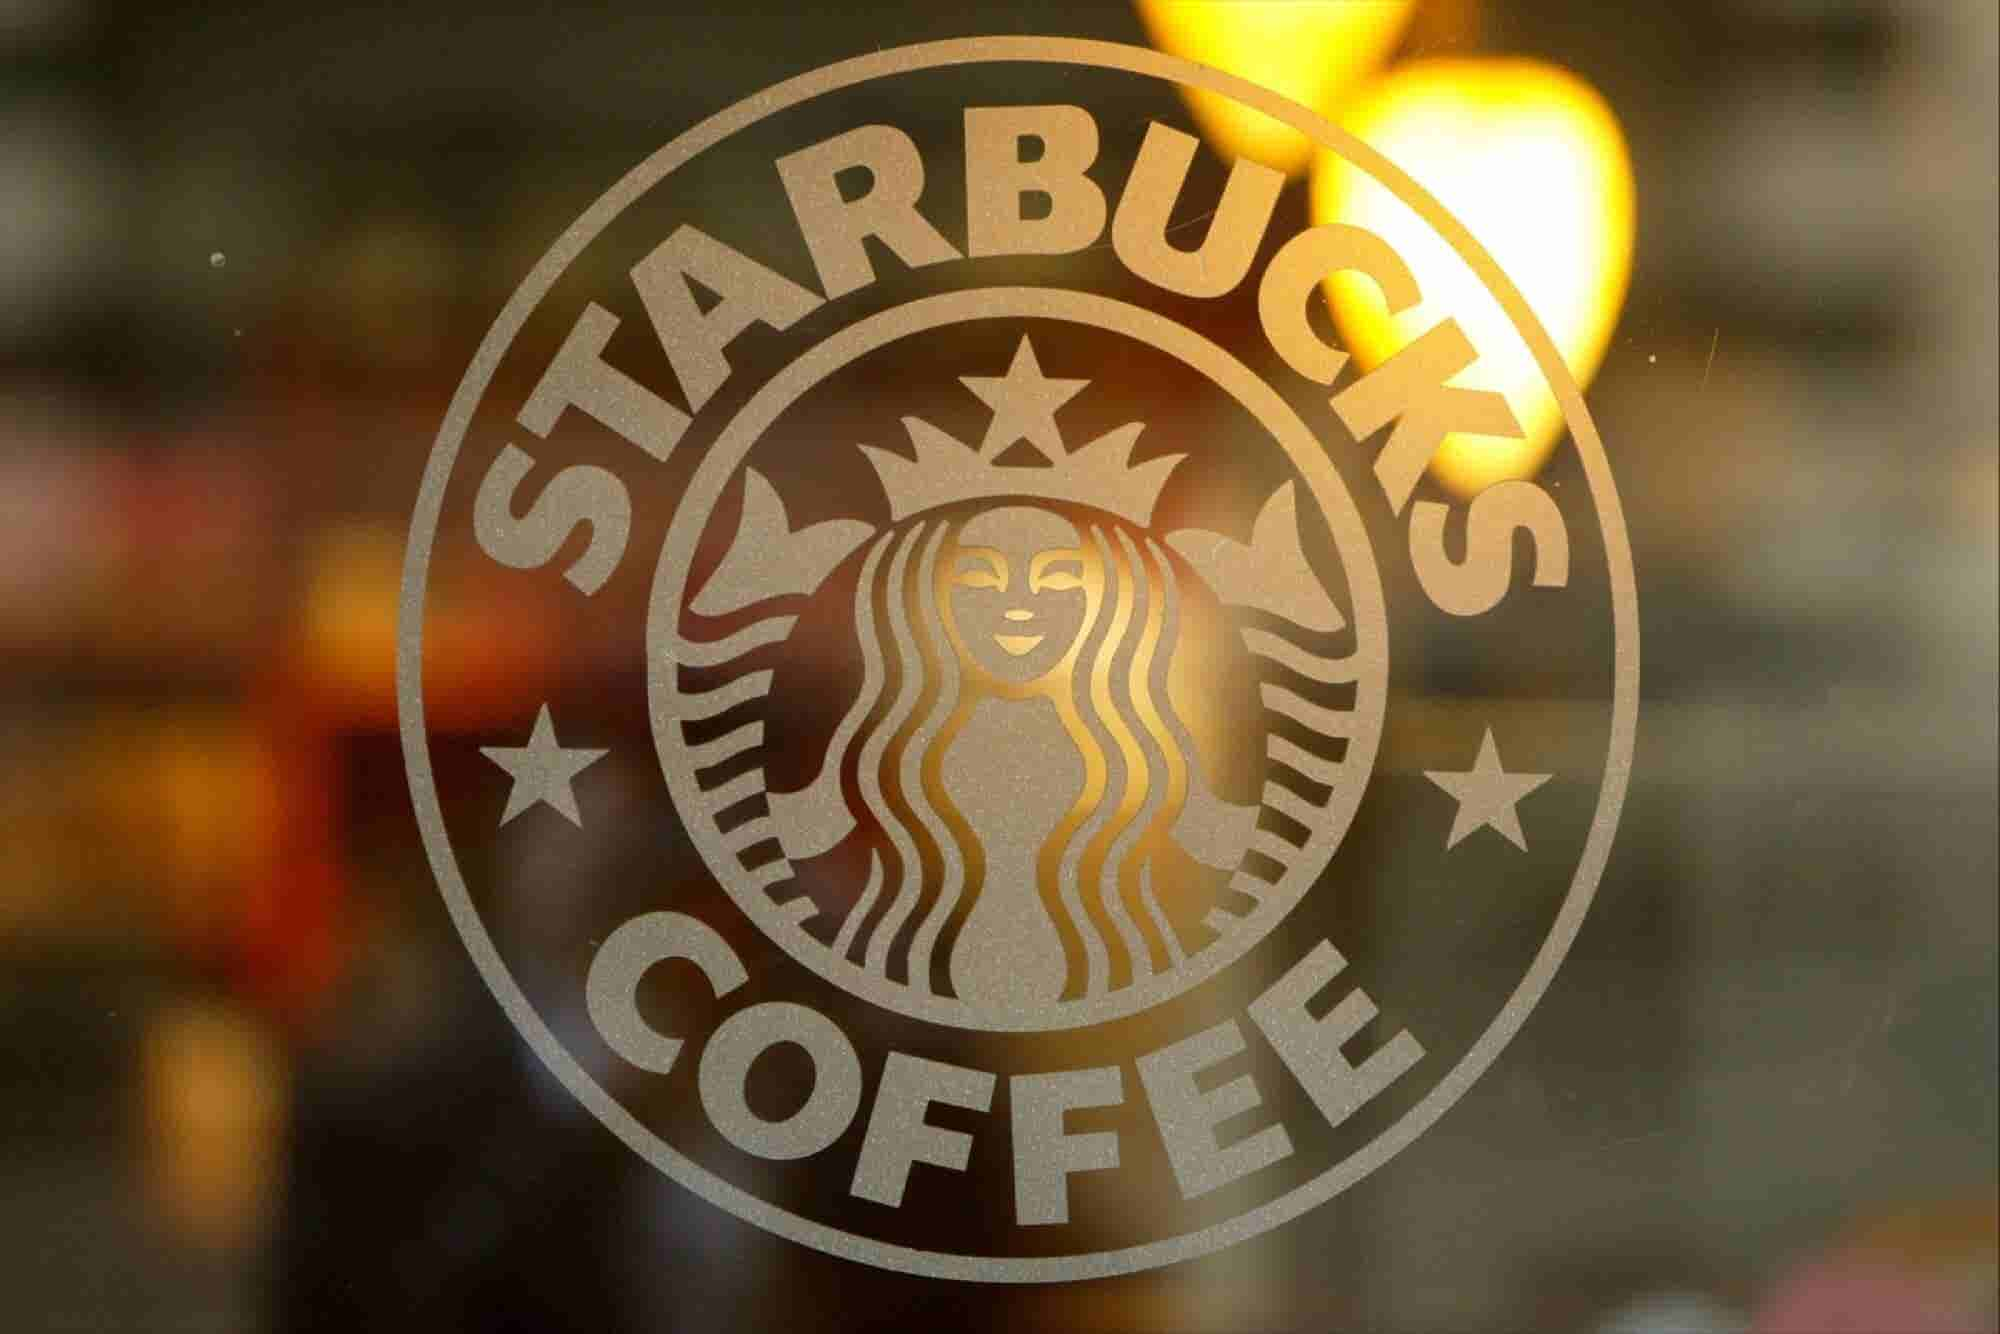 Starbucks the Latest to Block Pornography from Public Wi-Fi Networks